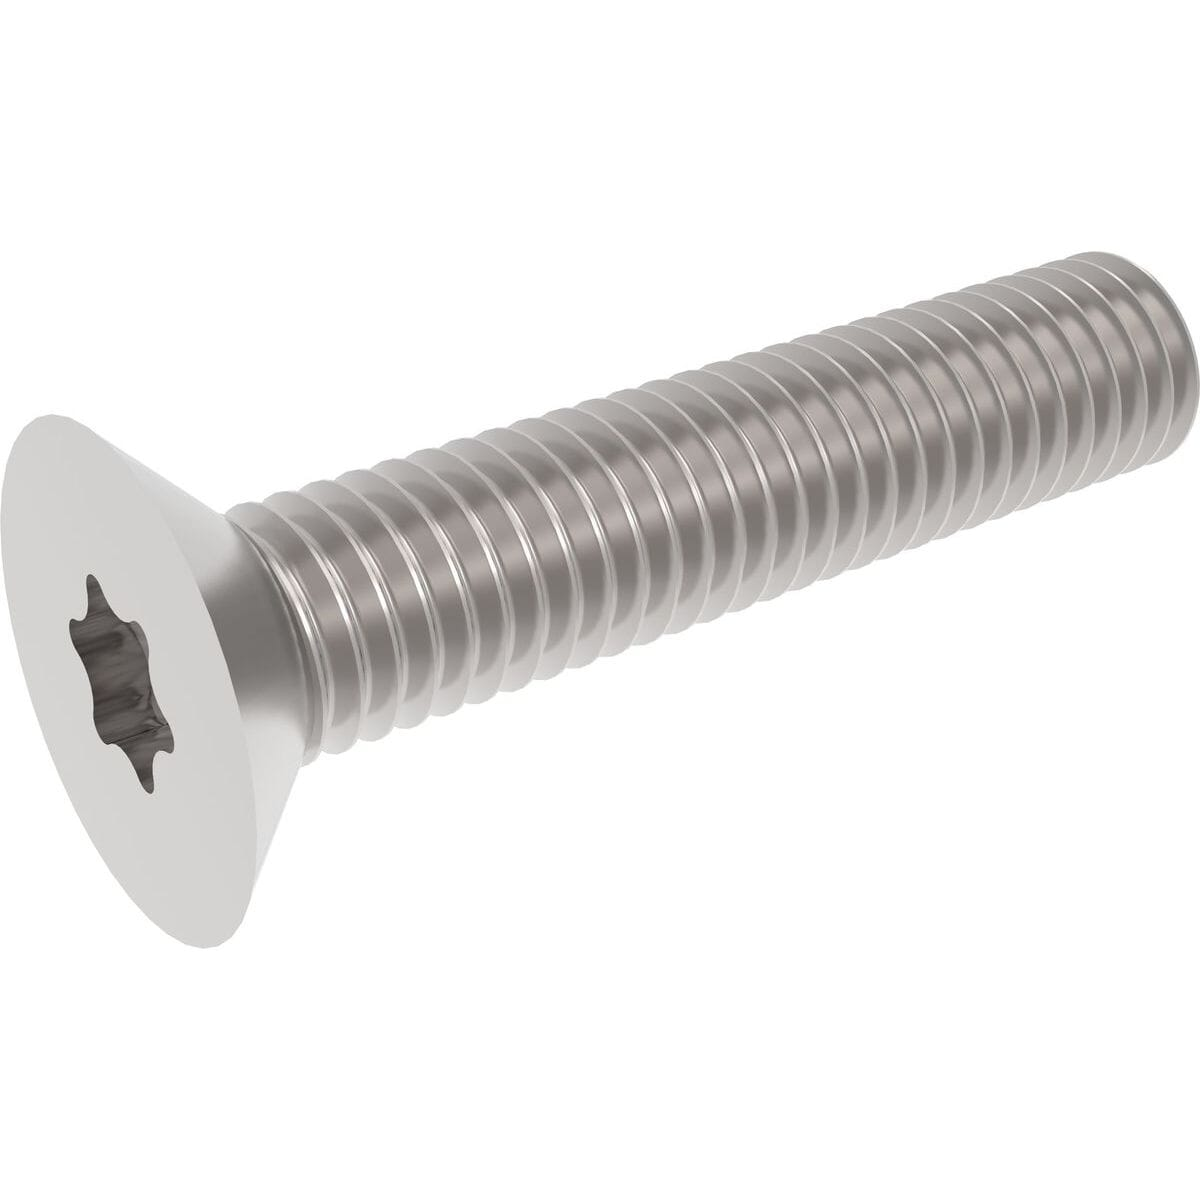 M1.6 x 4mm Torx Countersunk Screws (ISO 14581) - Stainless Steel (A2)